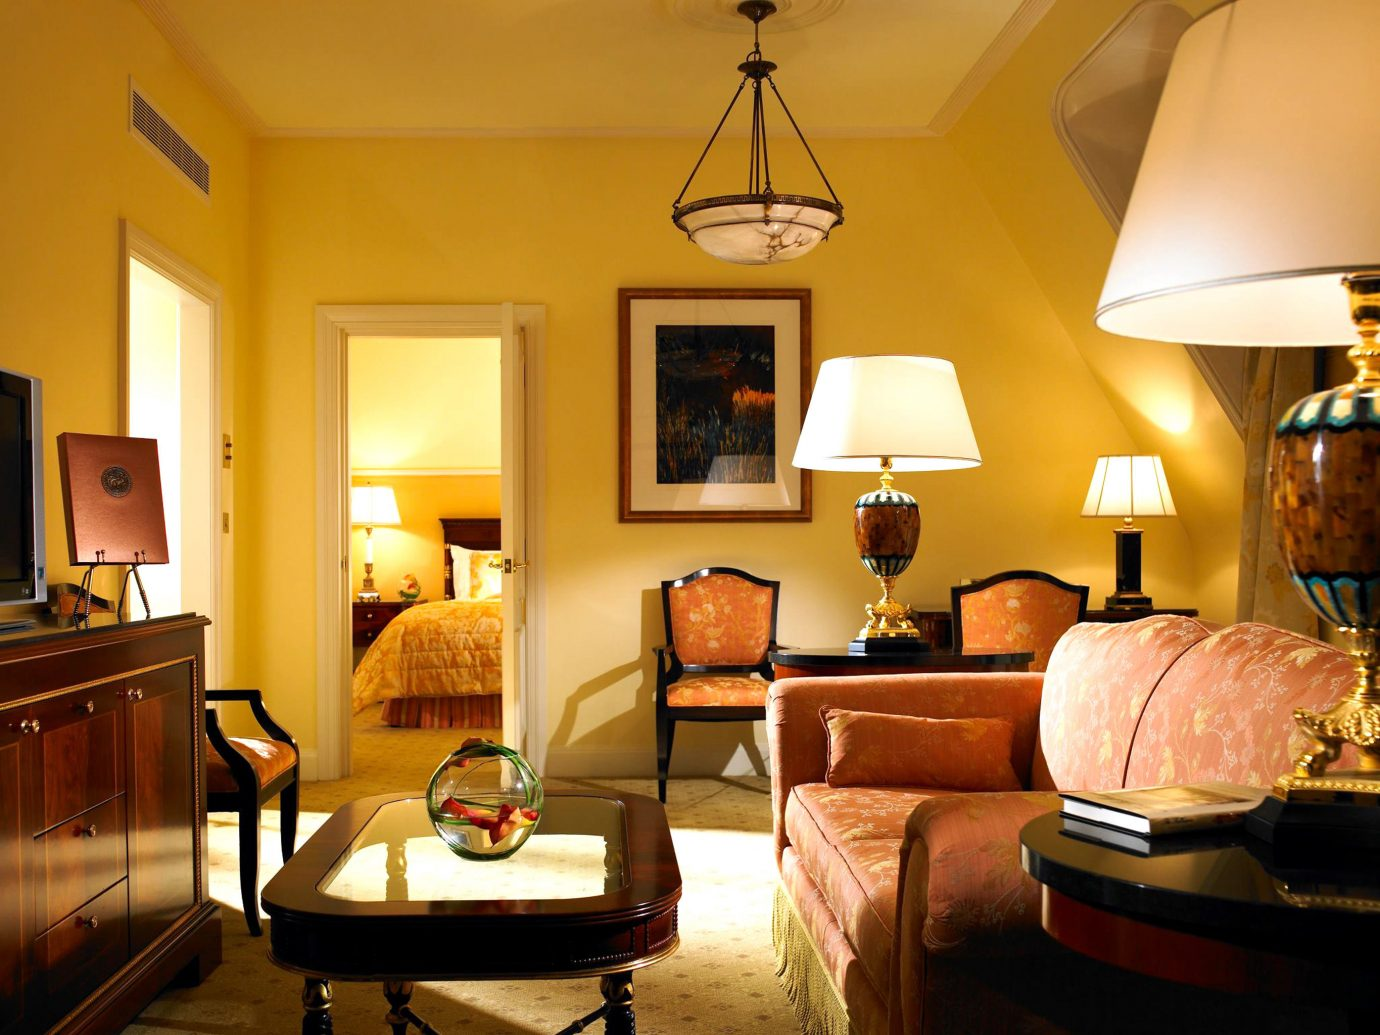 Classic Dublin Elegant Hotels Ireland Living Luxury Suite wall indoor room floor living room property home estate interior design dining room real estate yellow furniture cottage Design lamp area